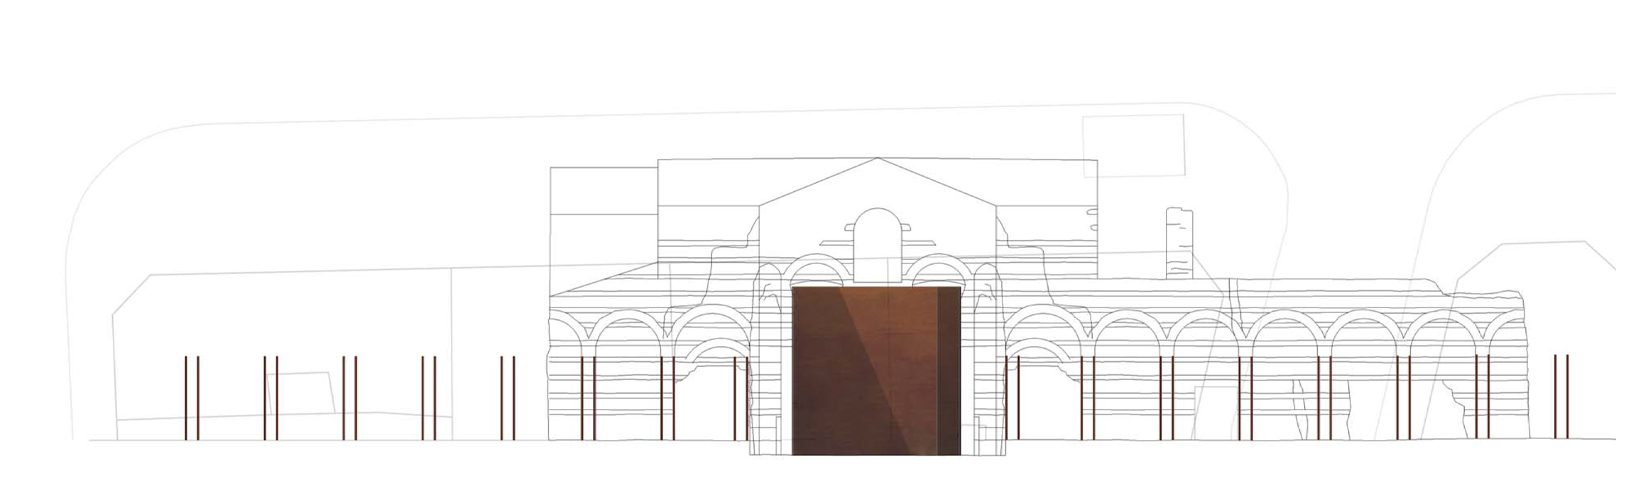 Thermes de Cluny architectural drawing by Bolter Design